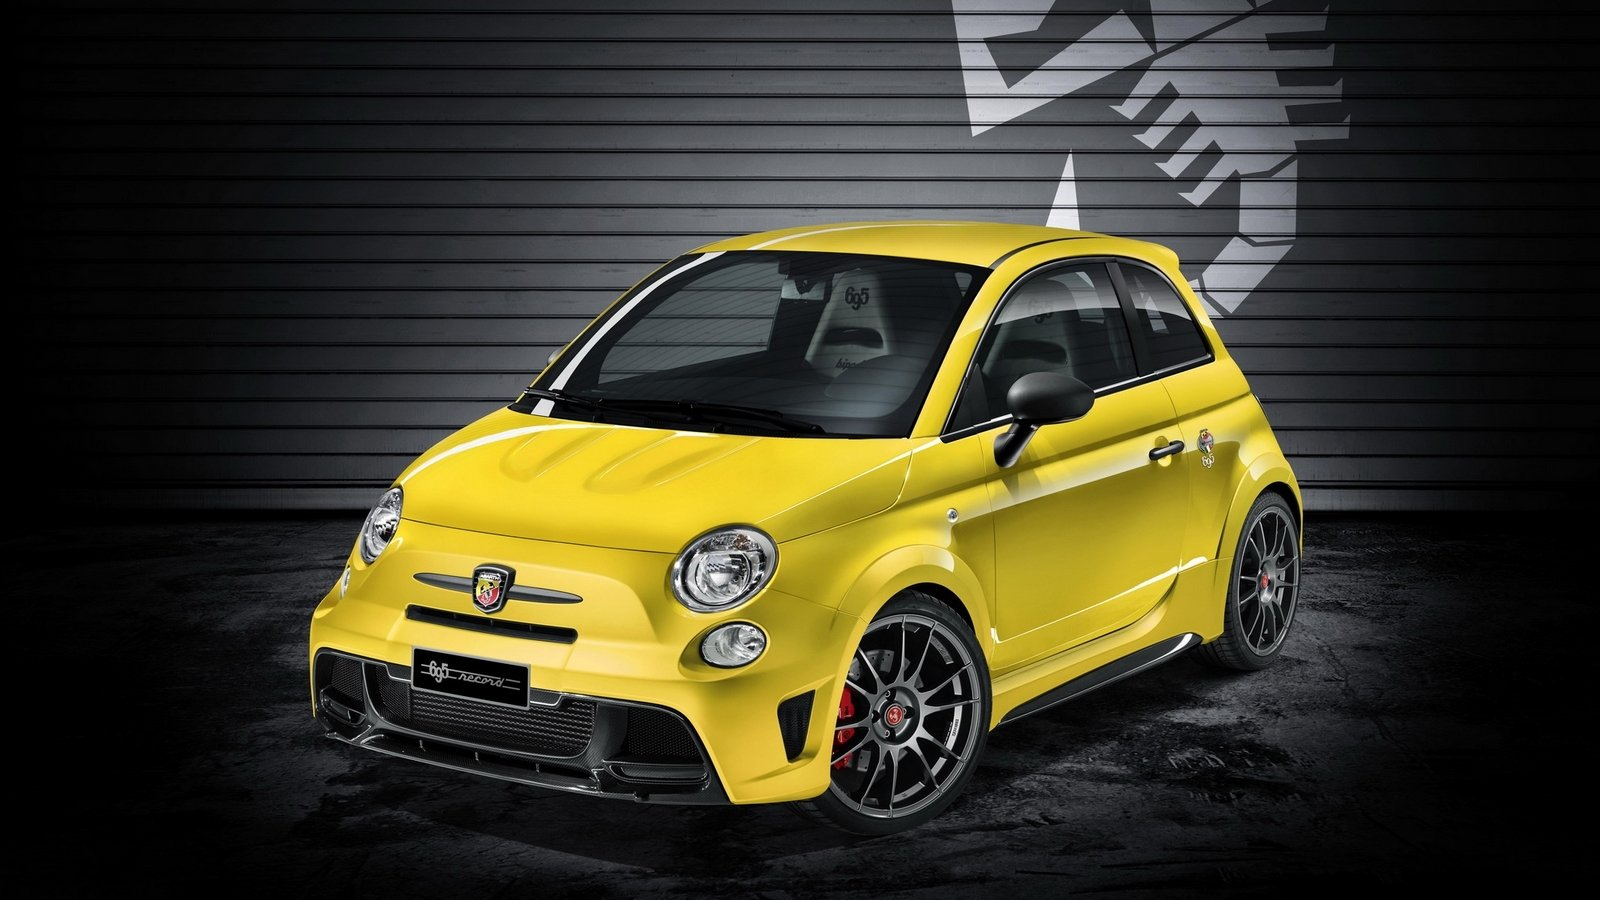 2016 abarth 695 biposto record picture 646470 car review top speed. Black Bedroom Furniture Sets. Home Design Ideas